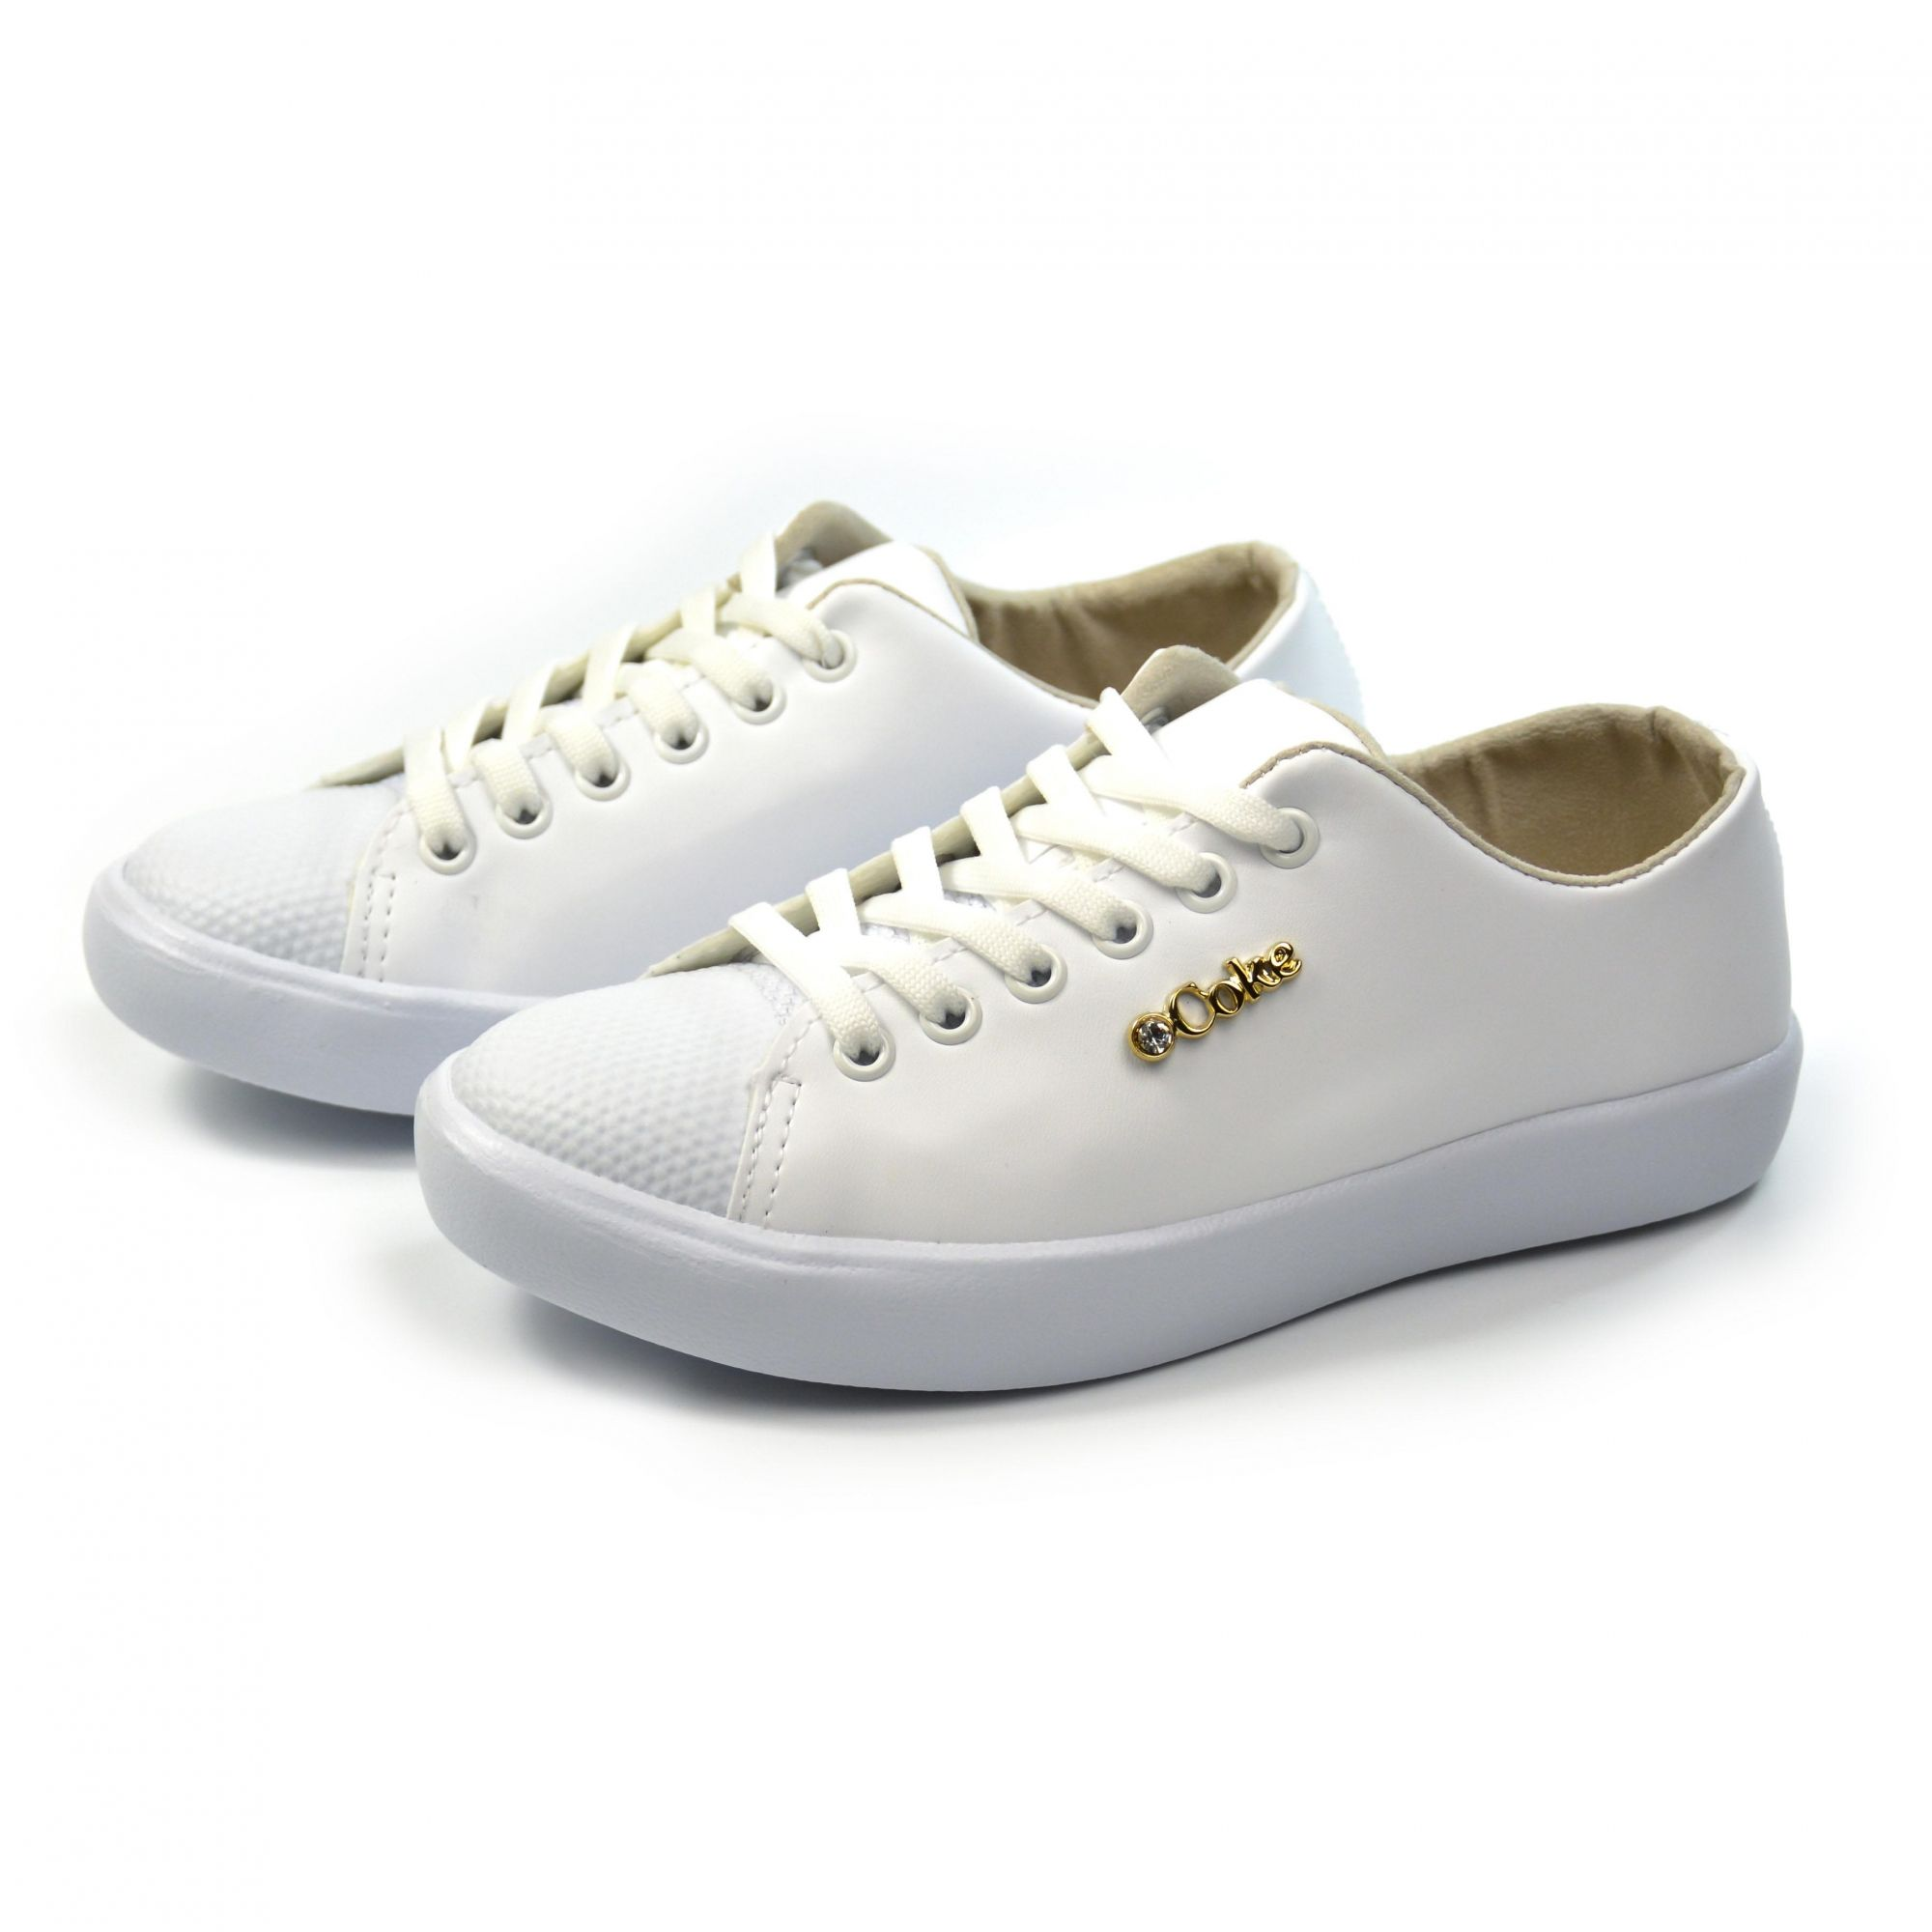 TENIS LUXOR LOW BRANCO CC1376_4 COCA-COLA 16957